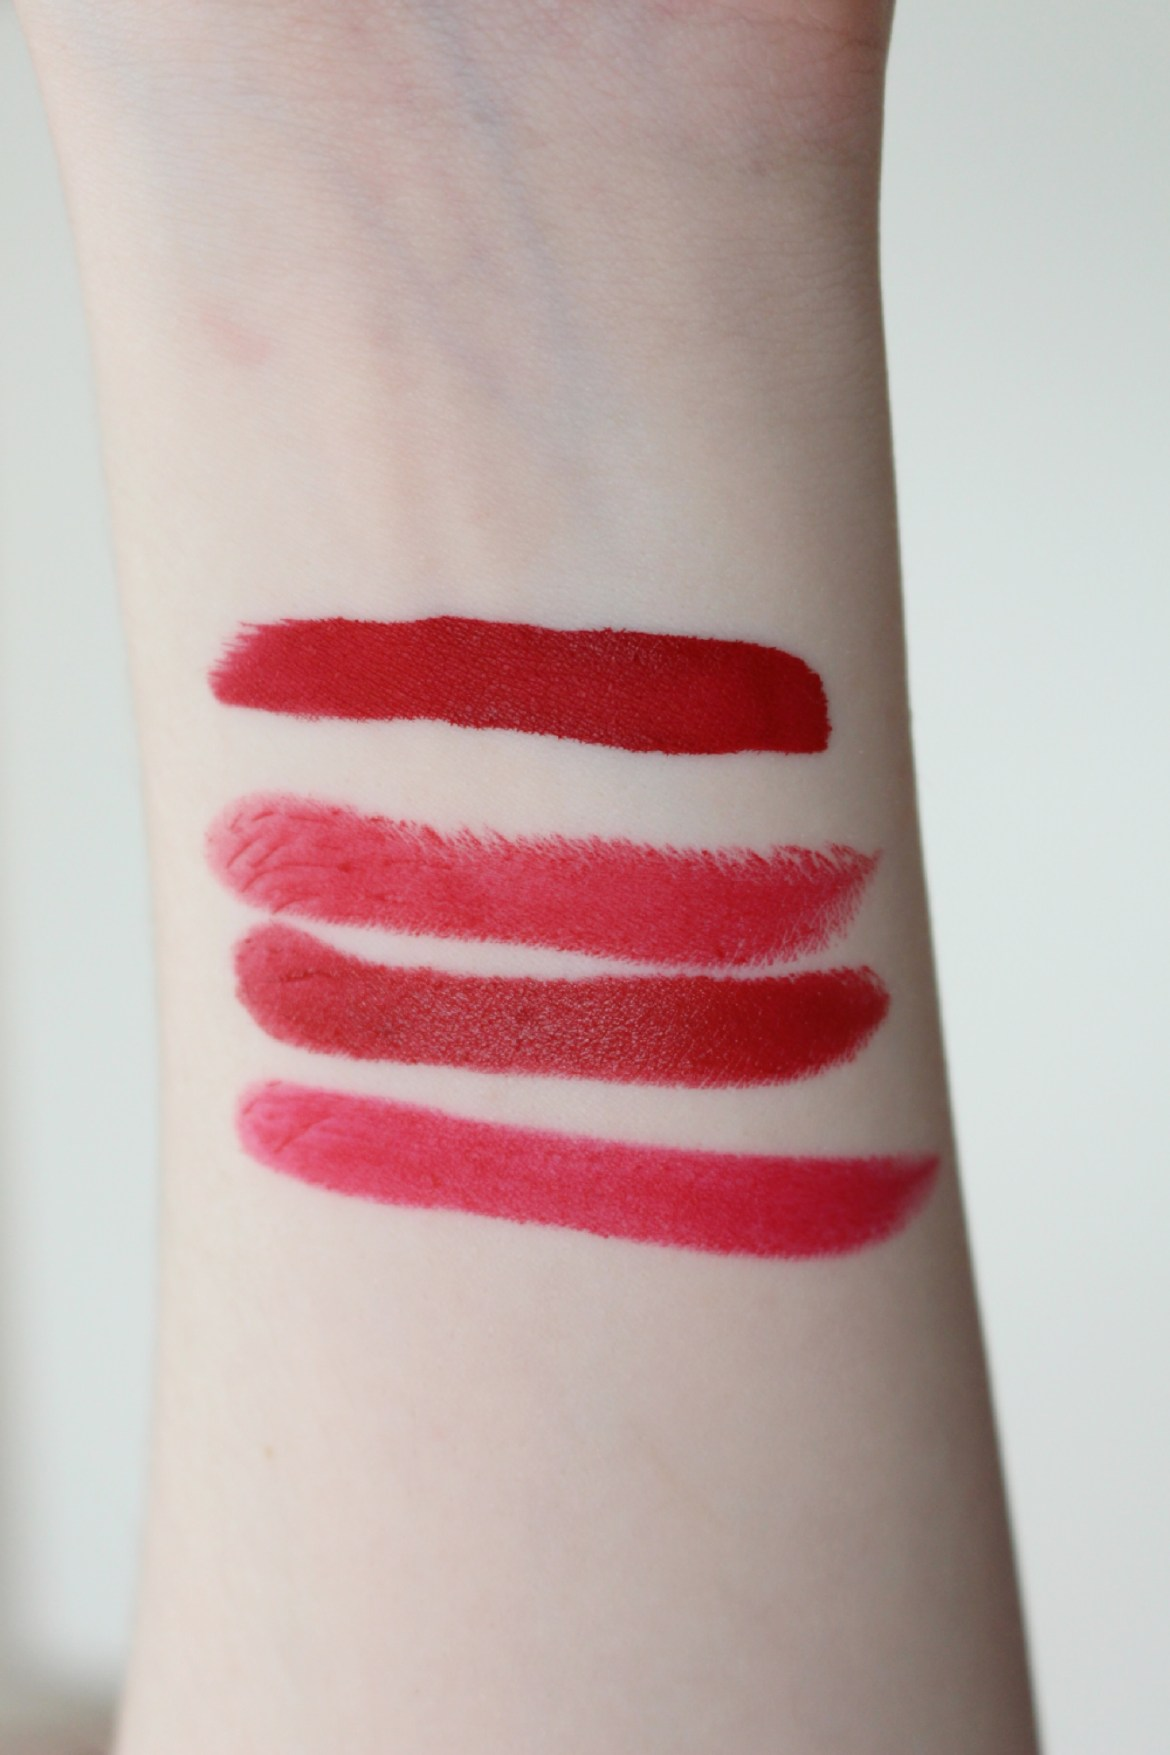 Top 4 Red Lipsticks CT Minis Fenty Beauty MAC Ruby Woo Swatches